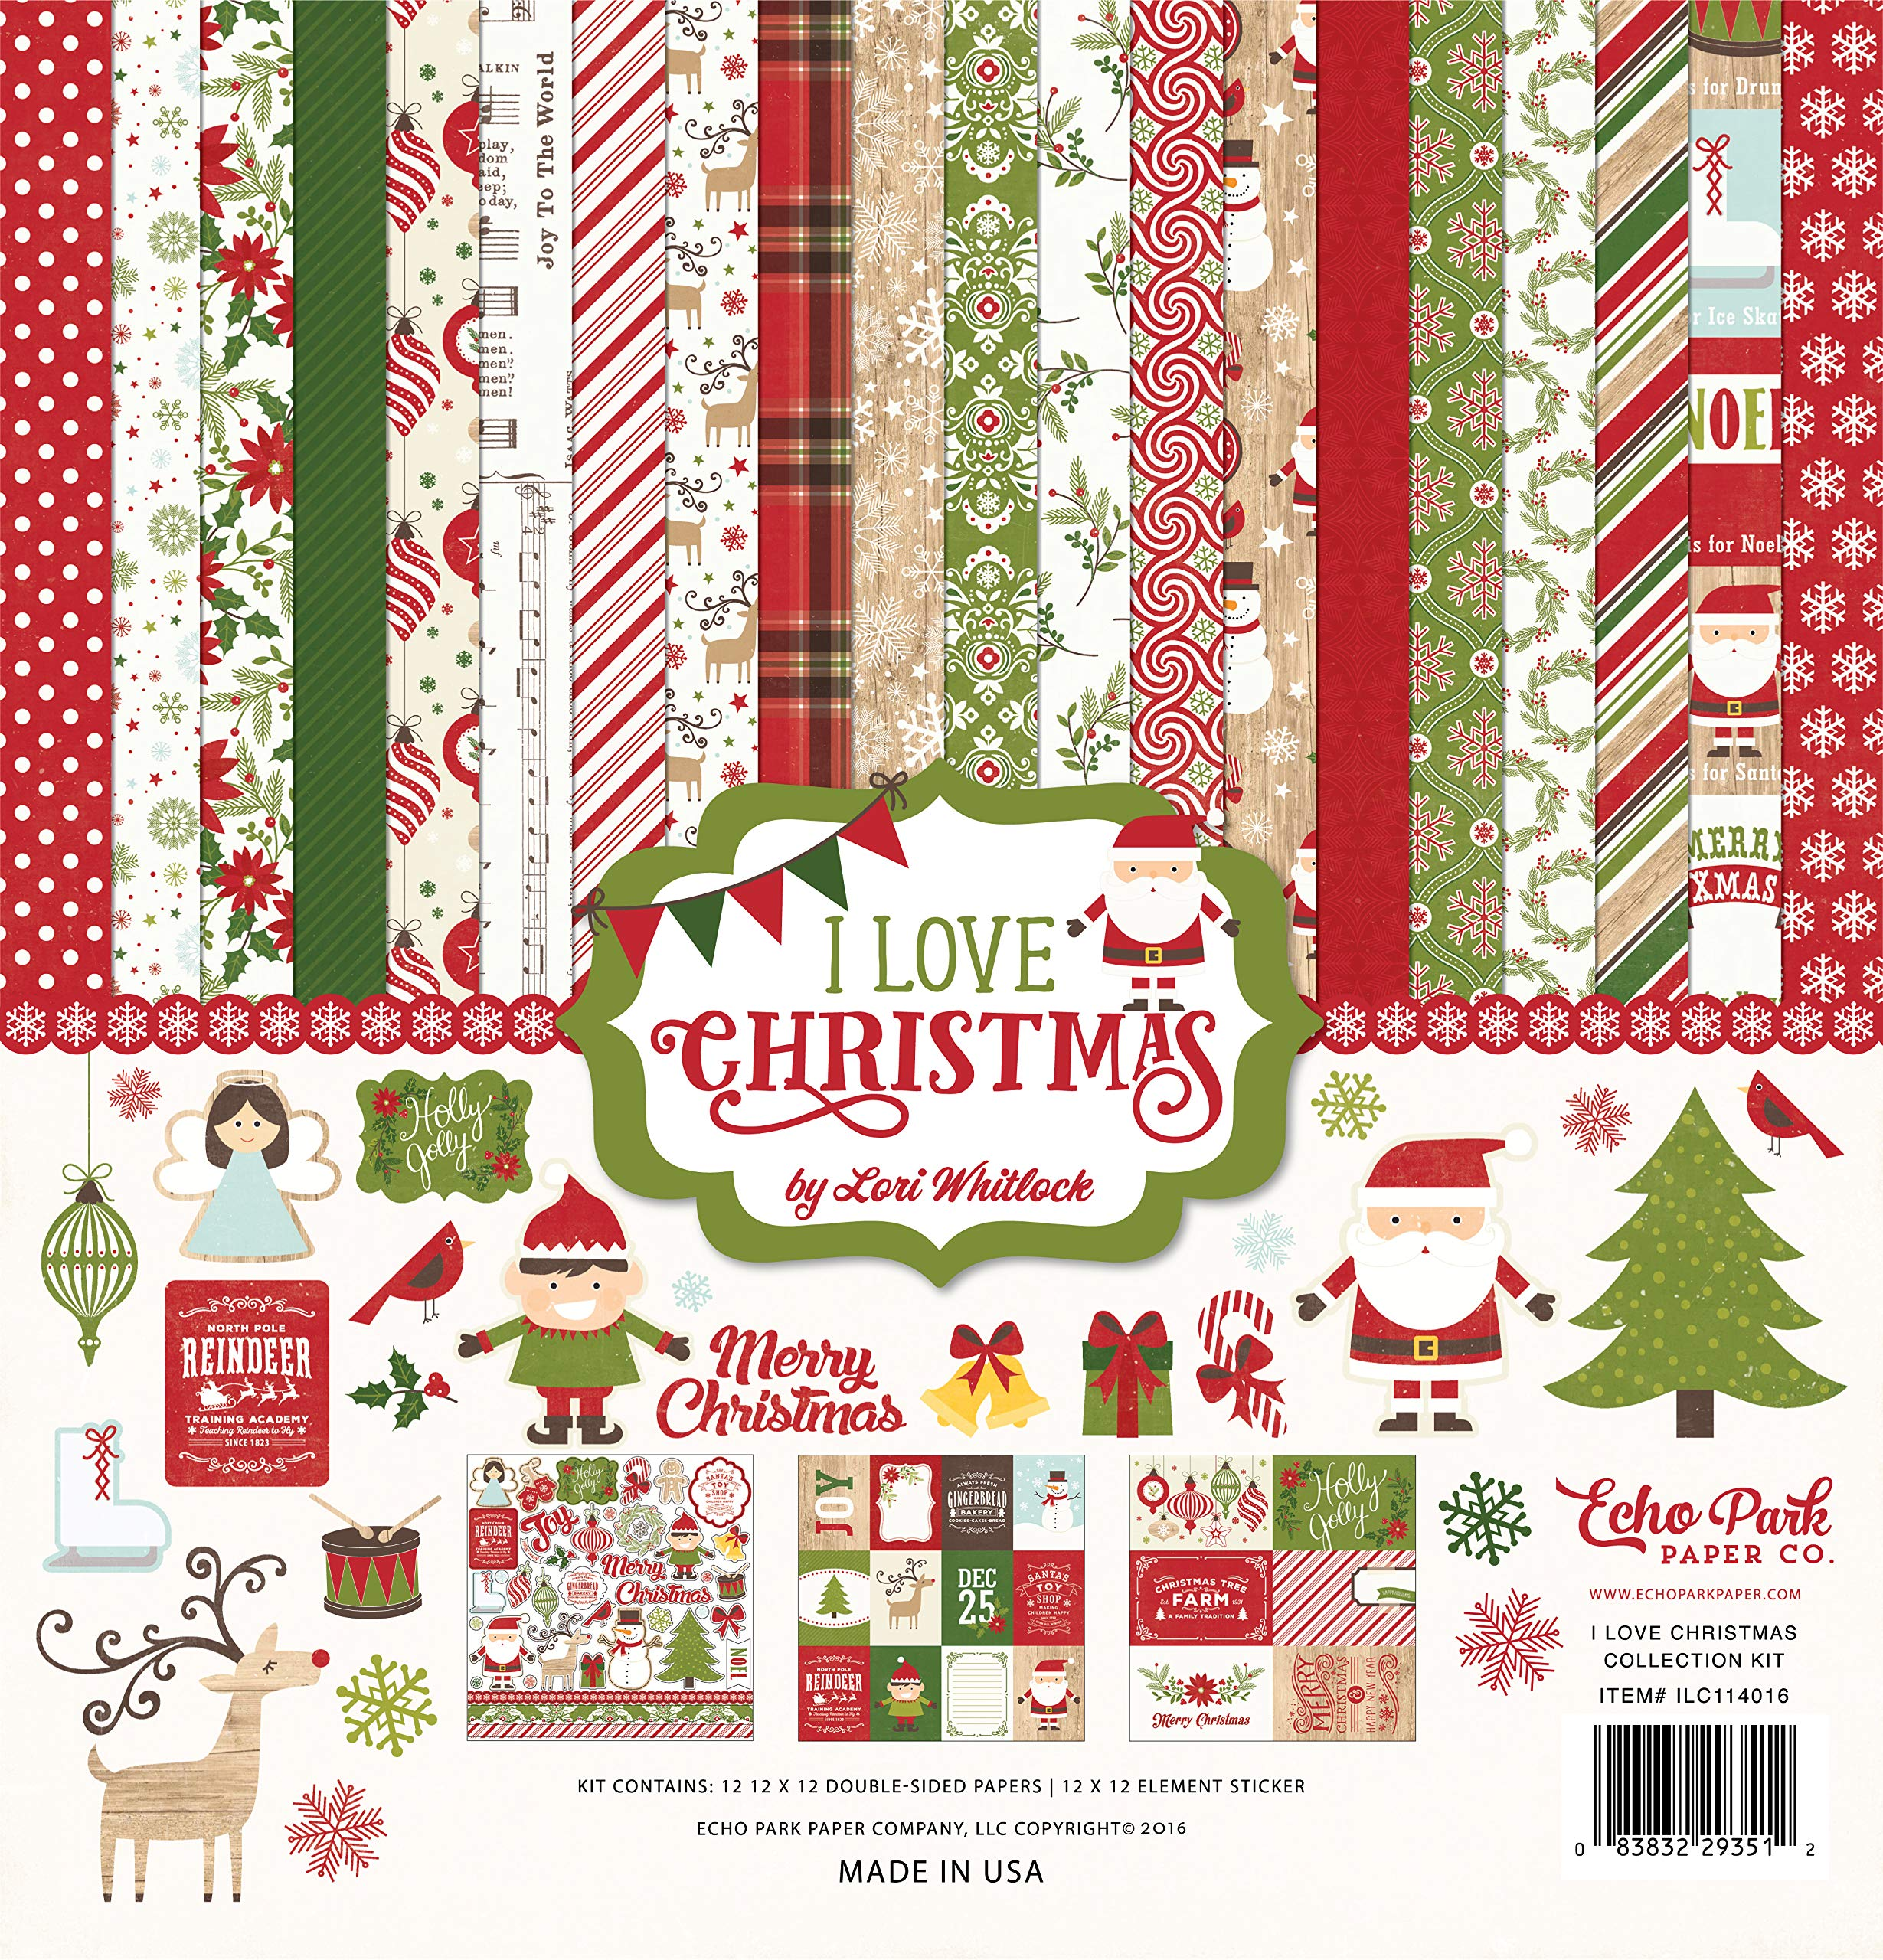 Echo Park Paper Company I I Love Christmas Collection Kit by Echo Park Paper Company